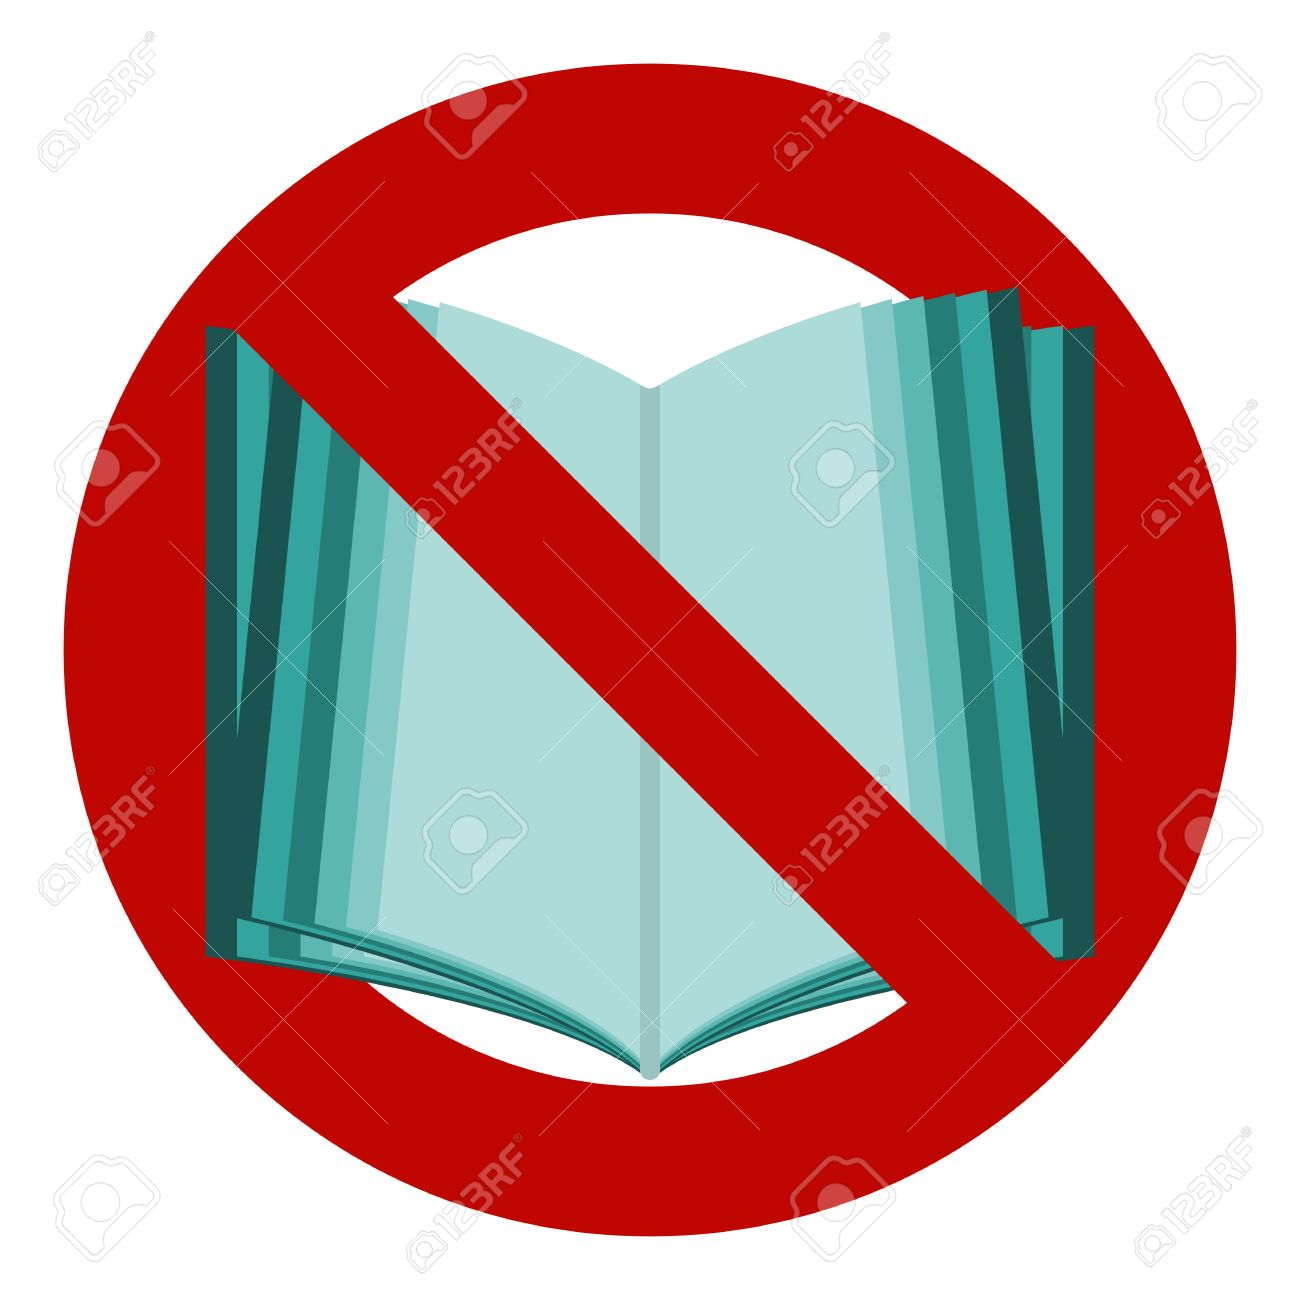 Do not read icon the symbol of the open book no stop banned the symbol of the open book no stop buycottarizona Image collections